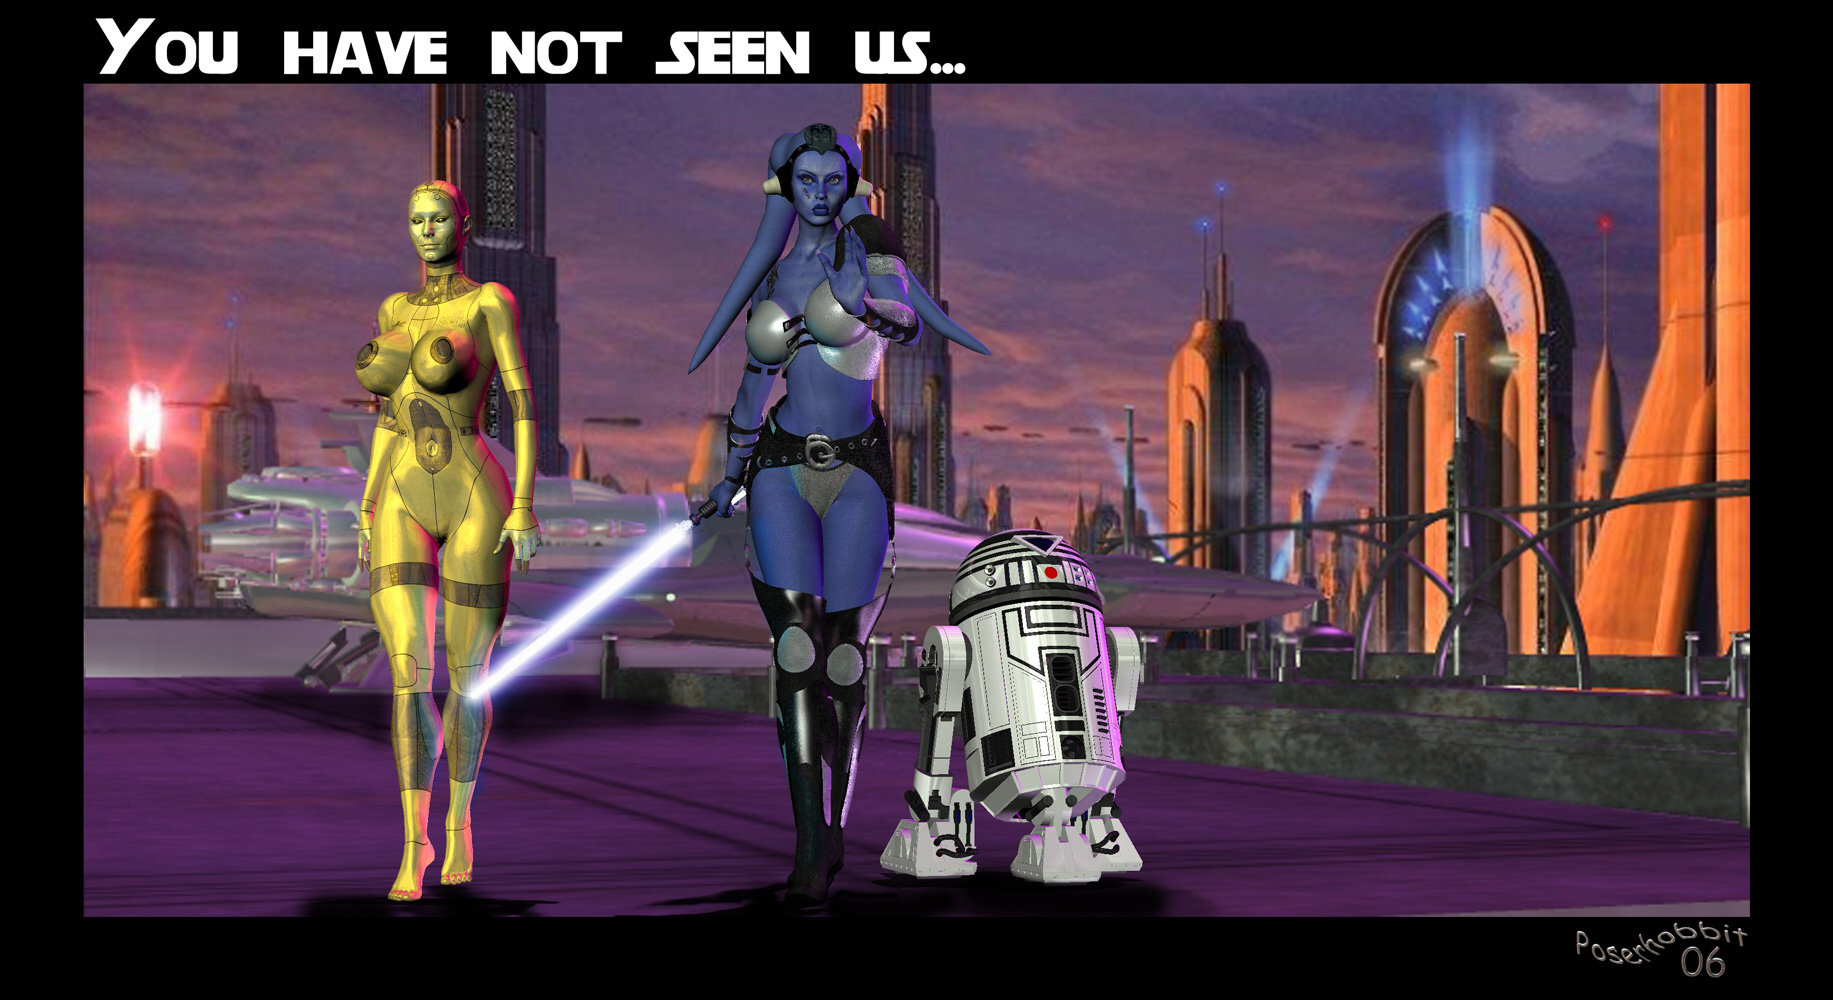 You Have Not Seen Us: A Twi'lek Jedi and her companions...